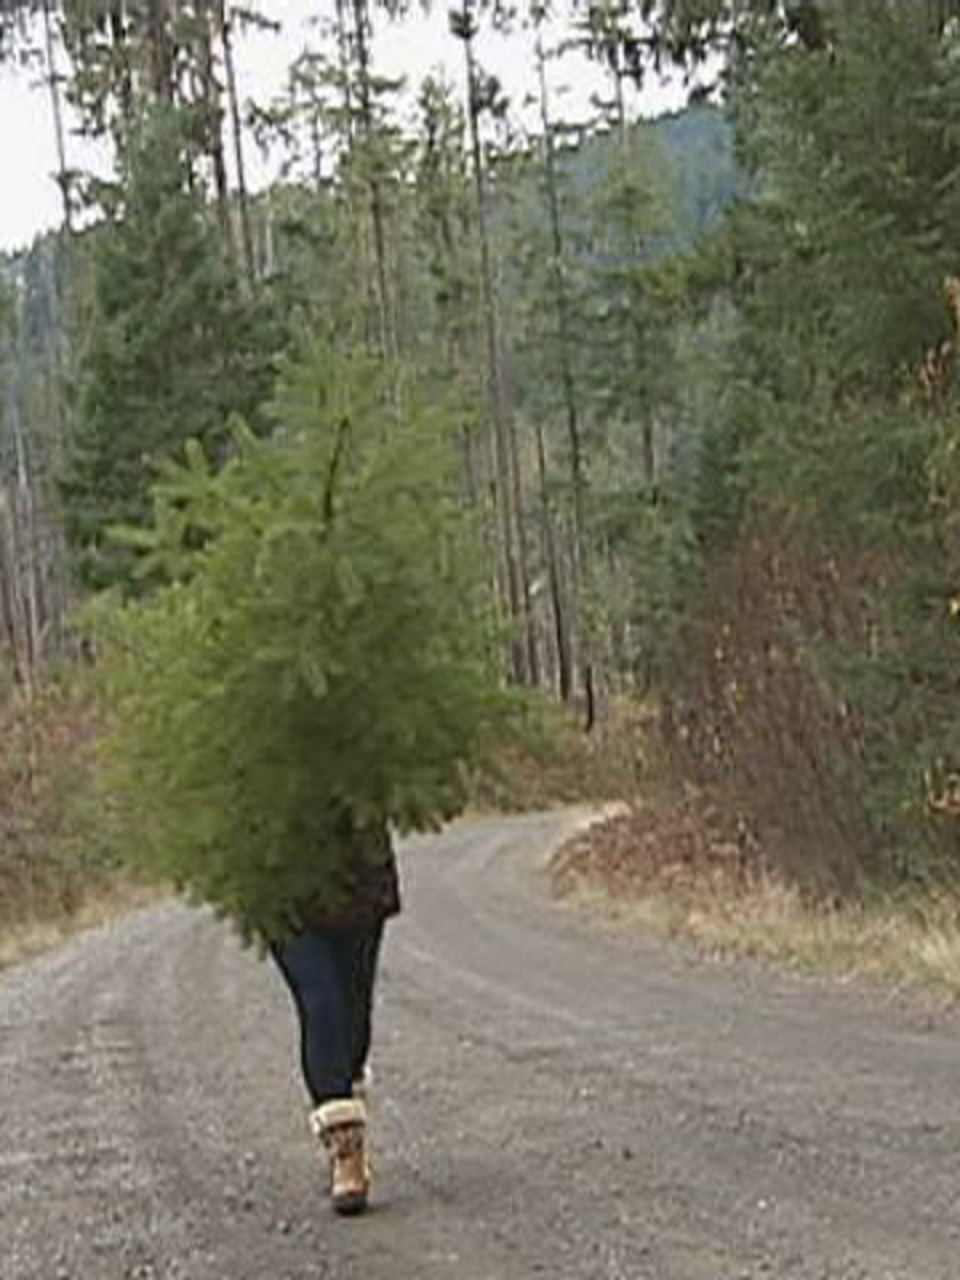 Need a Christmas tree? Permits $5 on